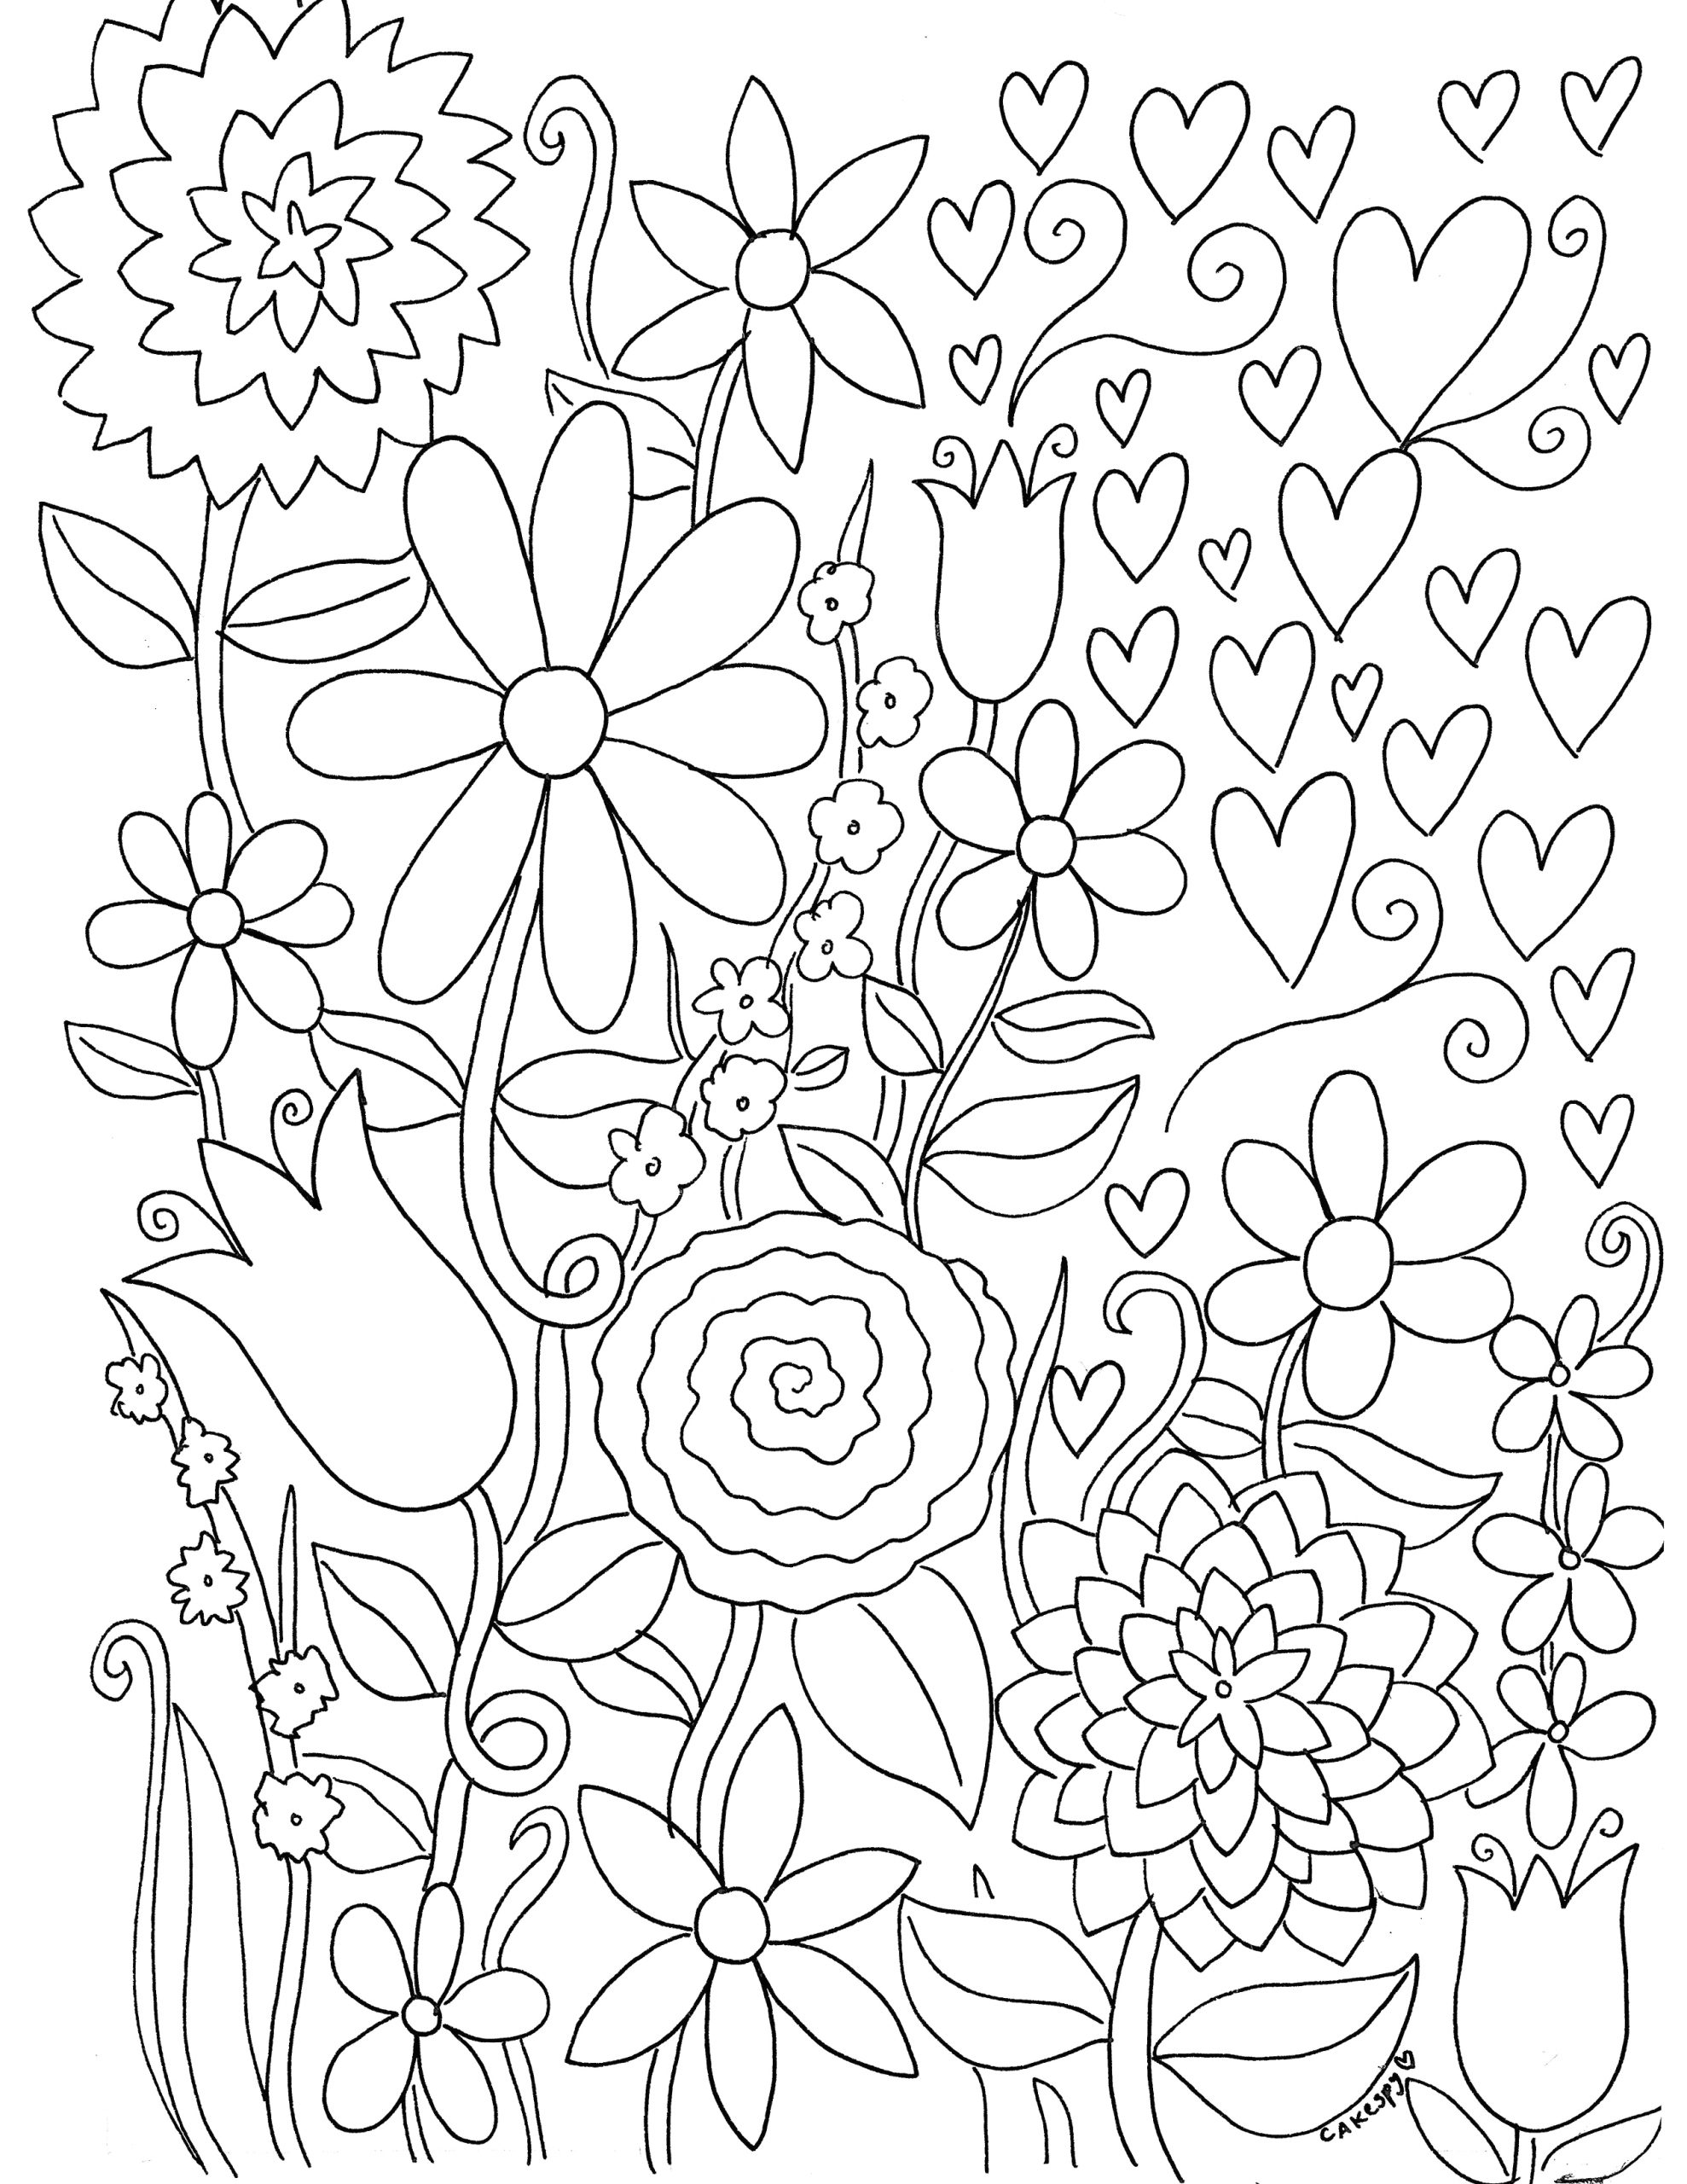 Make Your Own Coloring Pages Online Free Make Your Own Coloring Pages at Getcolorings